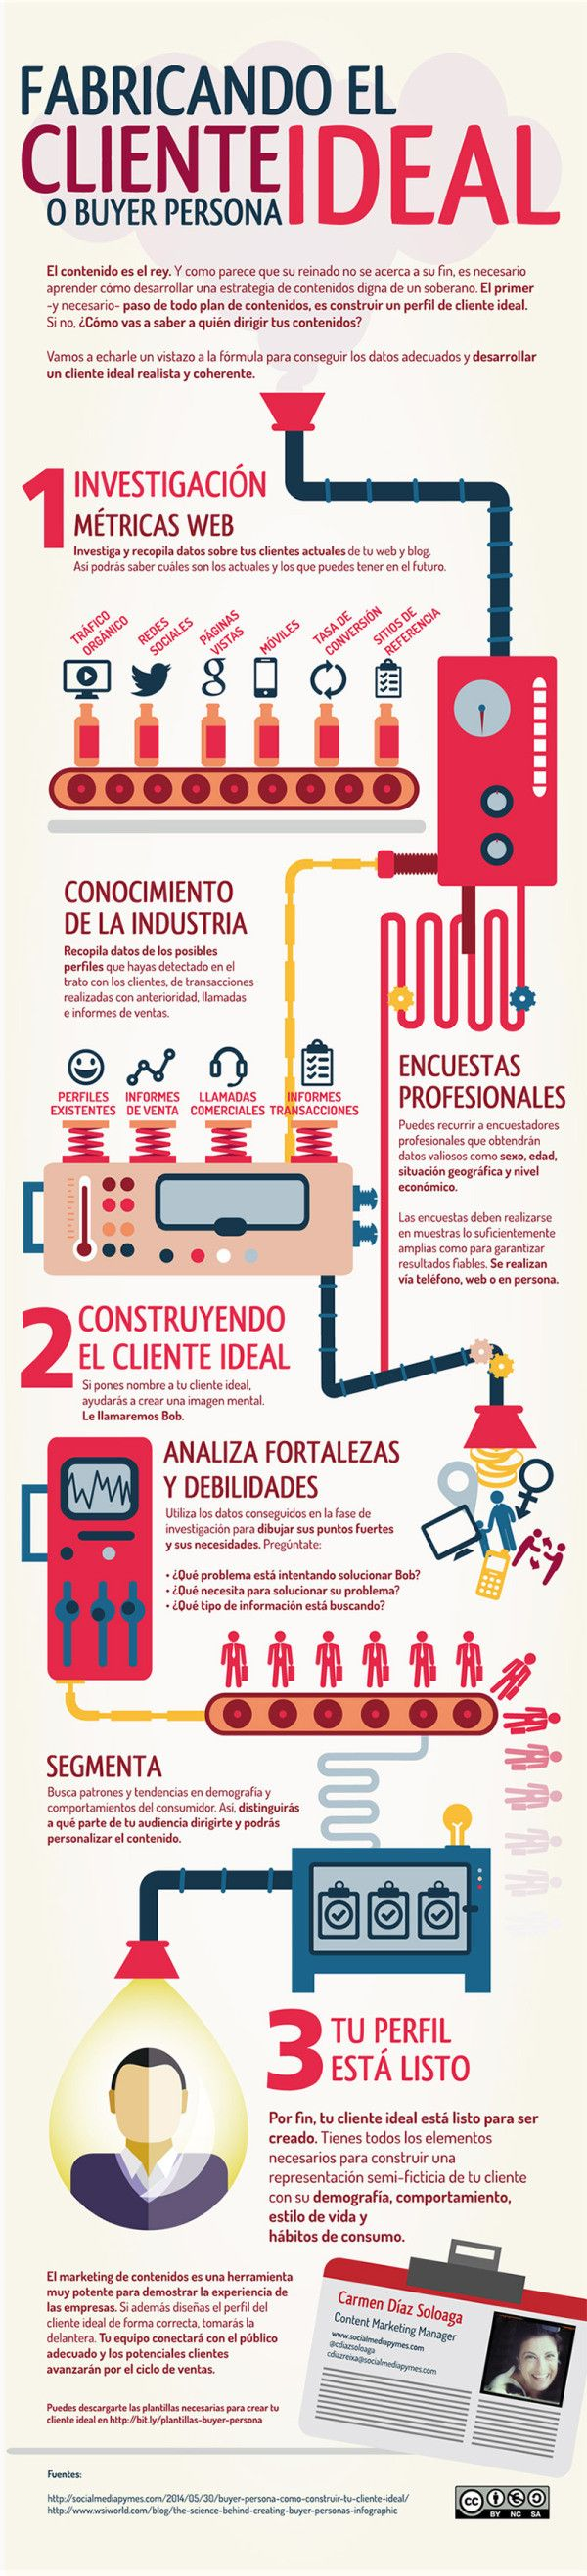 Construyendo el cliente ideal #infografia #infographic #marketing